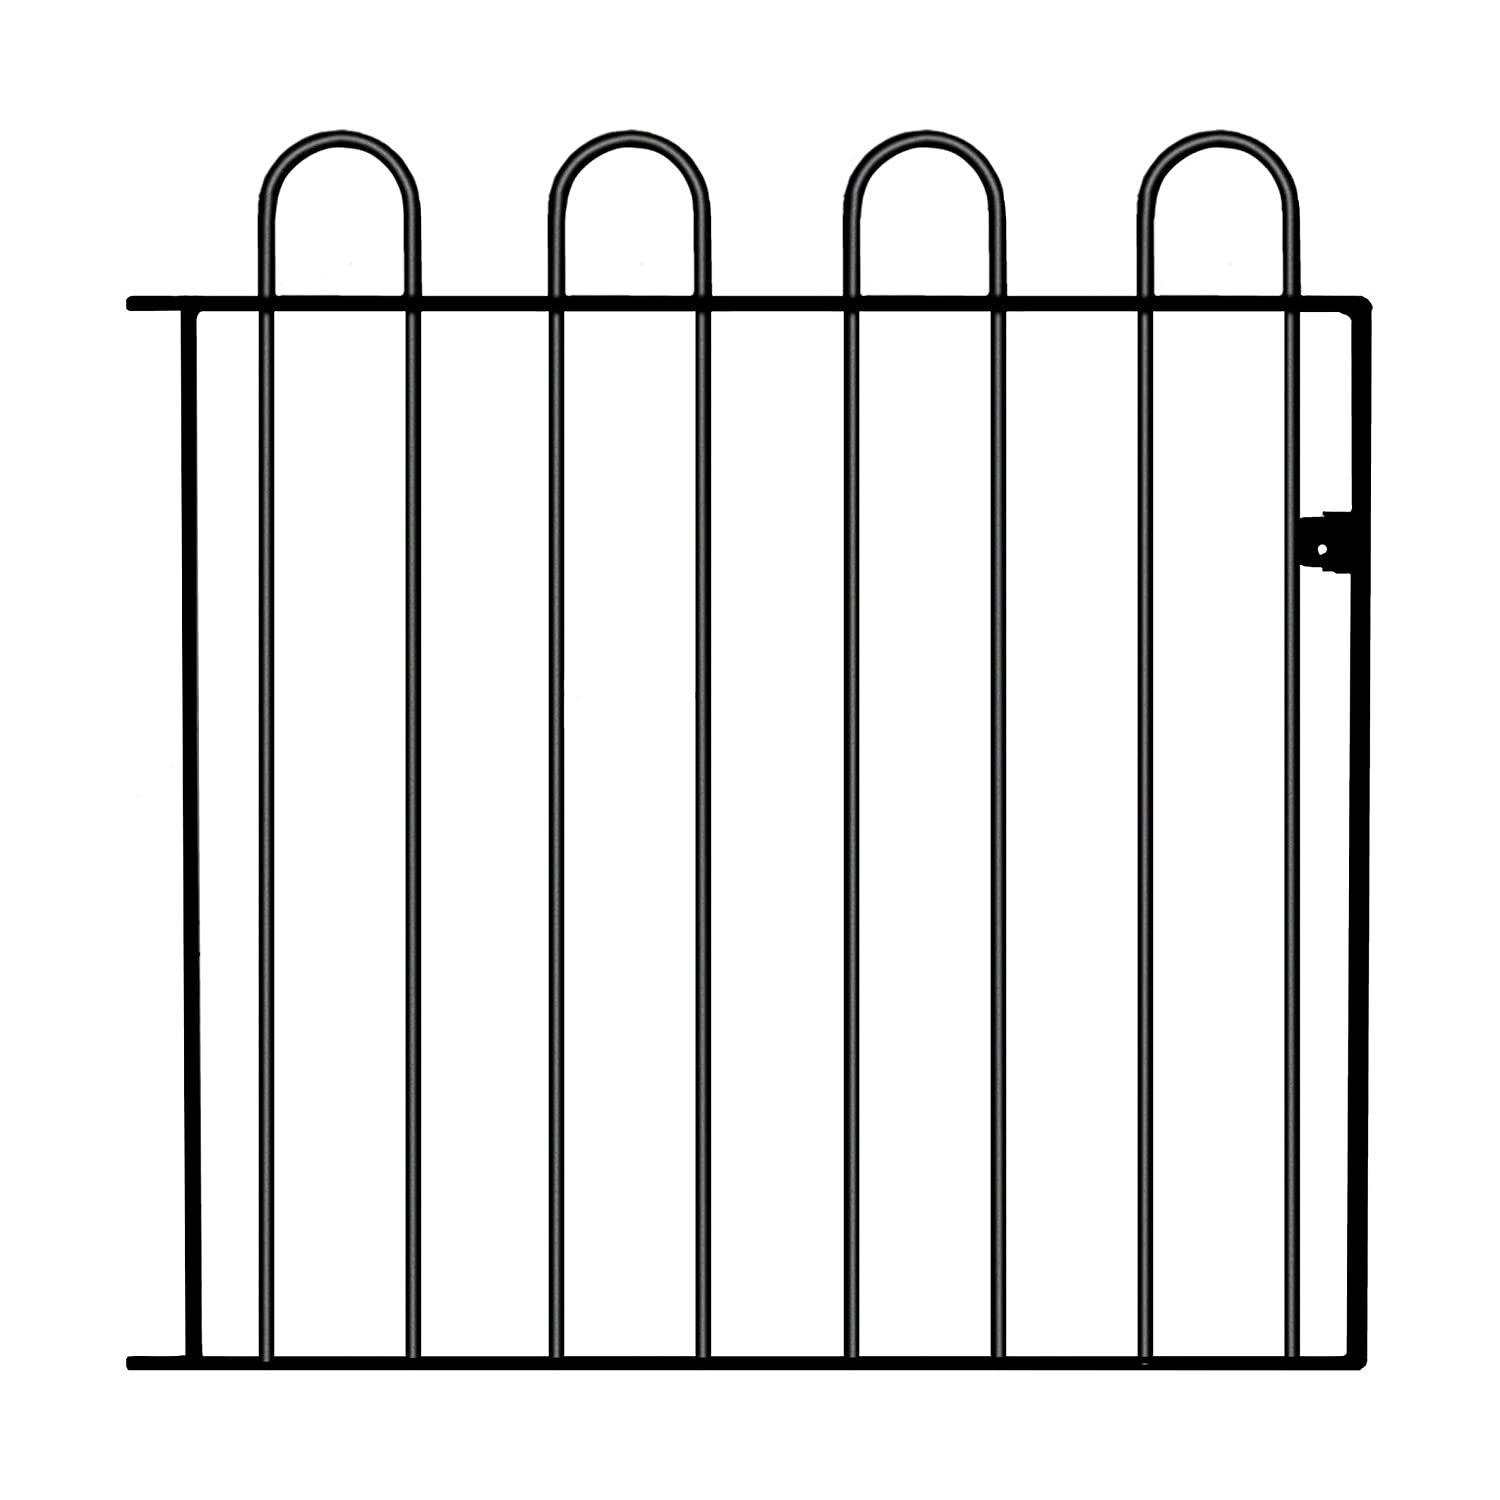 Court Hoop Top Garden Gates fits 1000mm (3ft 3in) GAP x 950mm High wrought iron style metal gate CR05